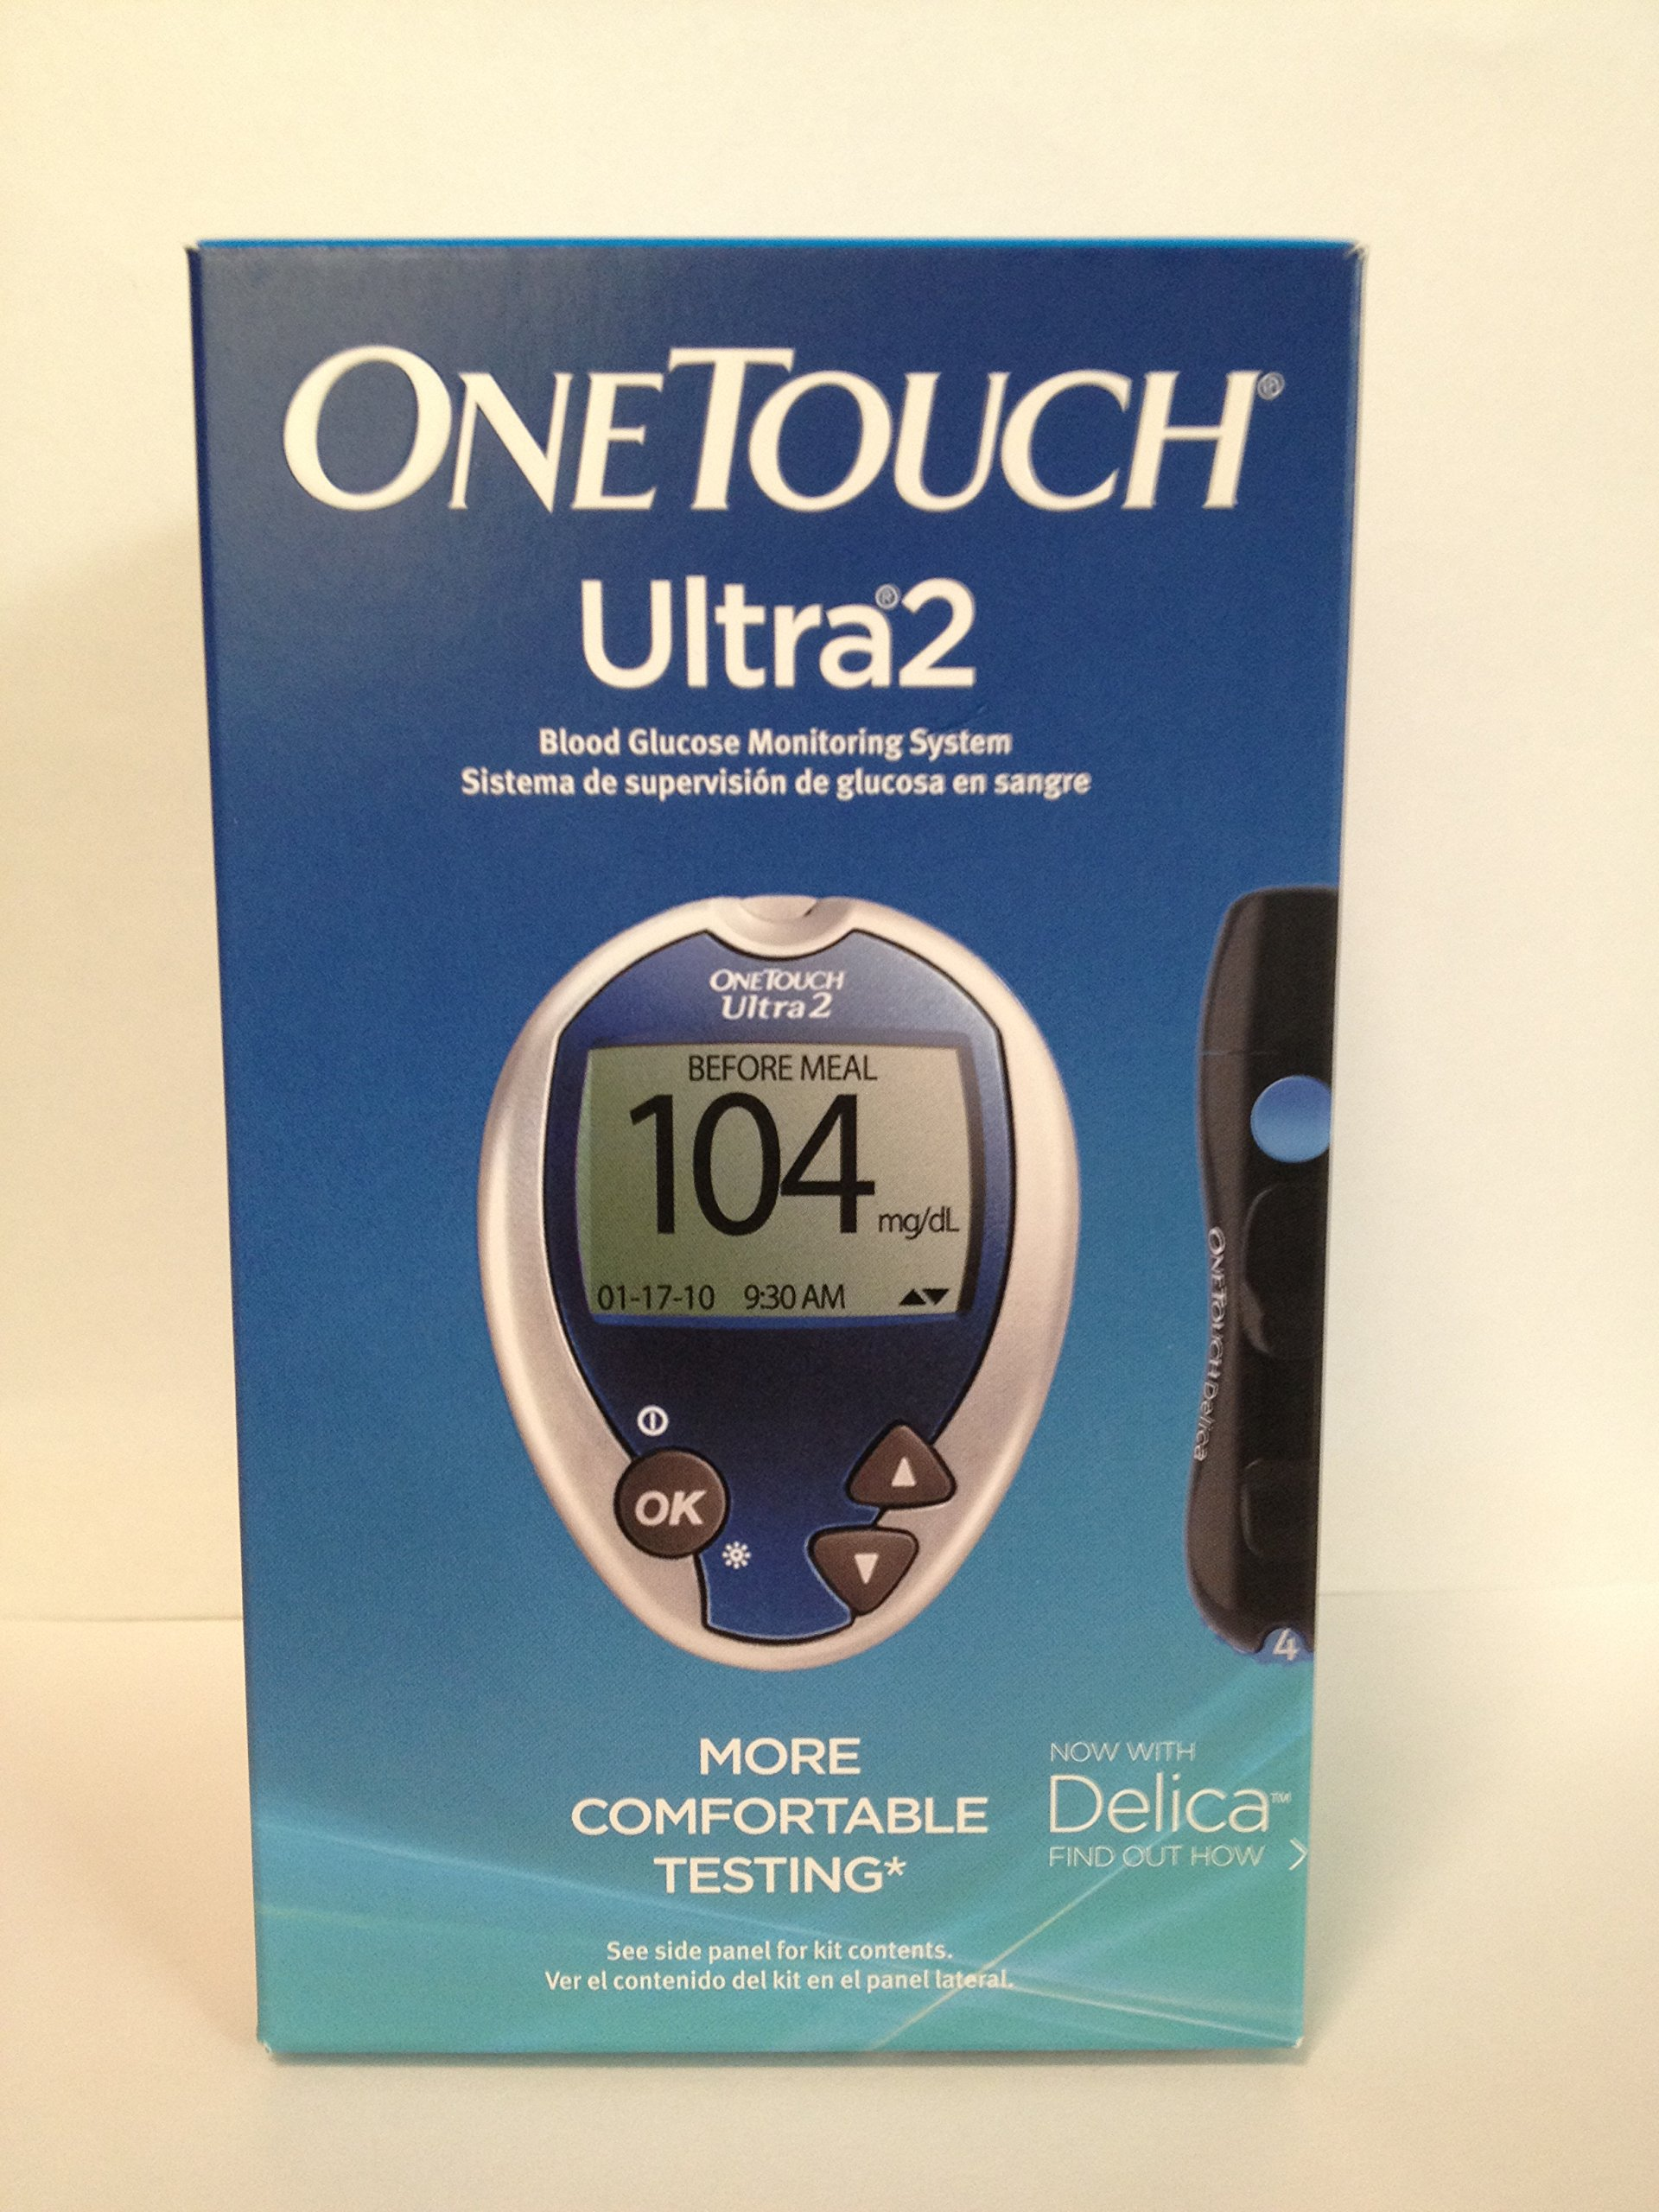 ONE Touch Ultra 2 Blood Monitoring System by One Touch